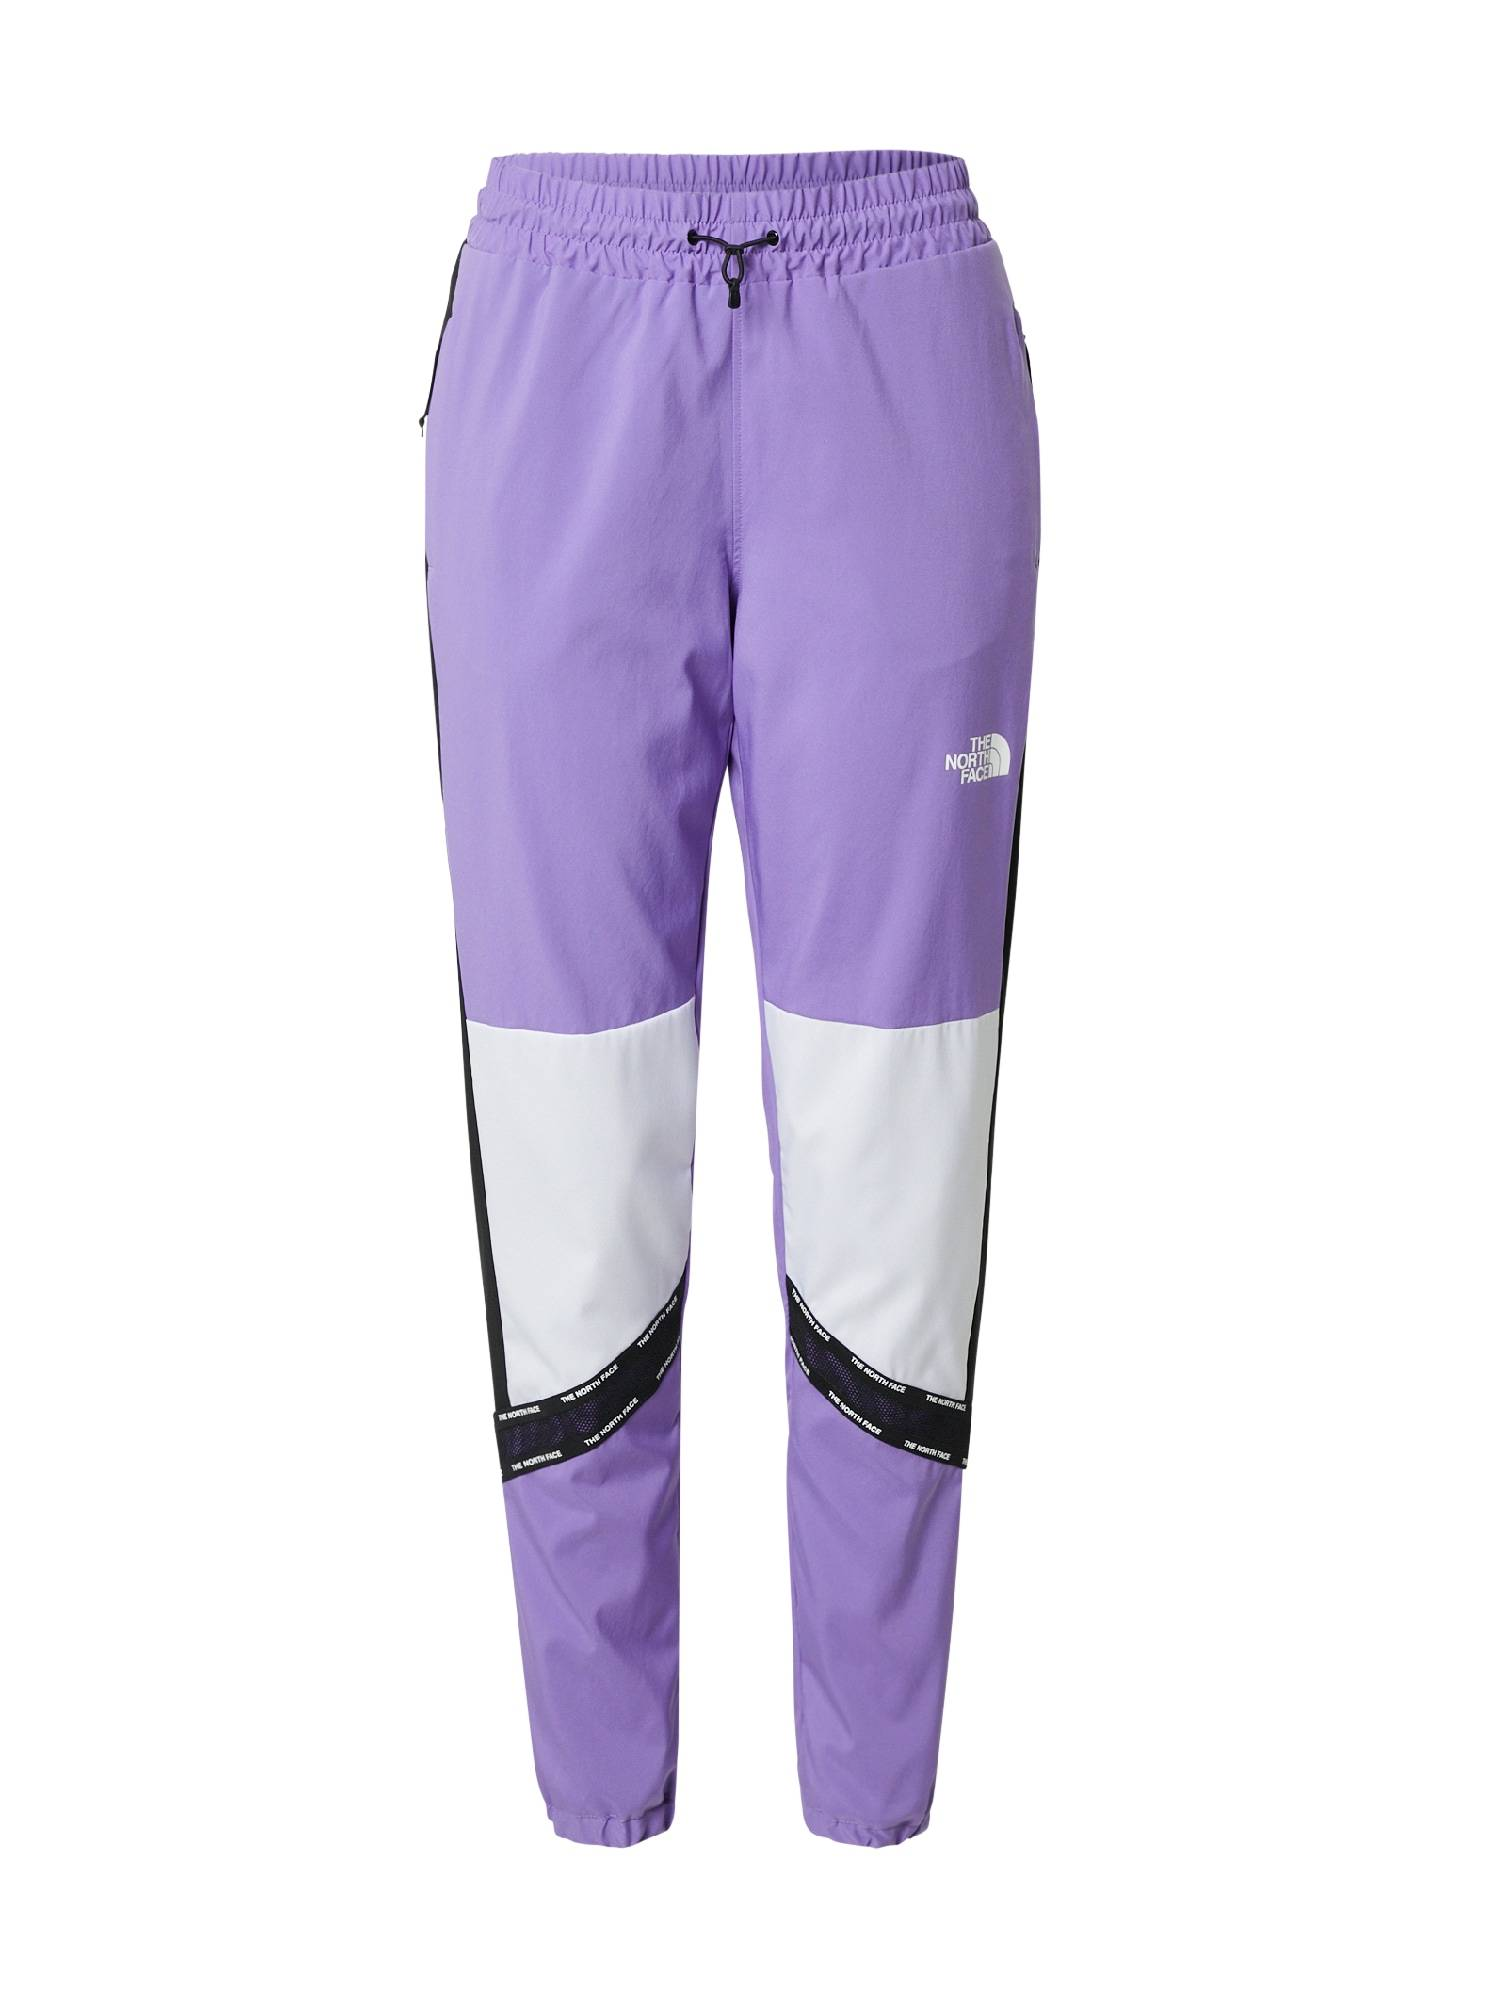 THE NORTH FACE Pantalon 'Train'  - Violet - Taille: XS - female